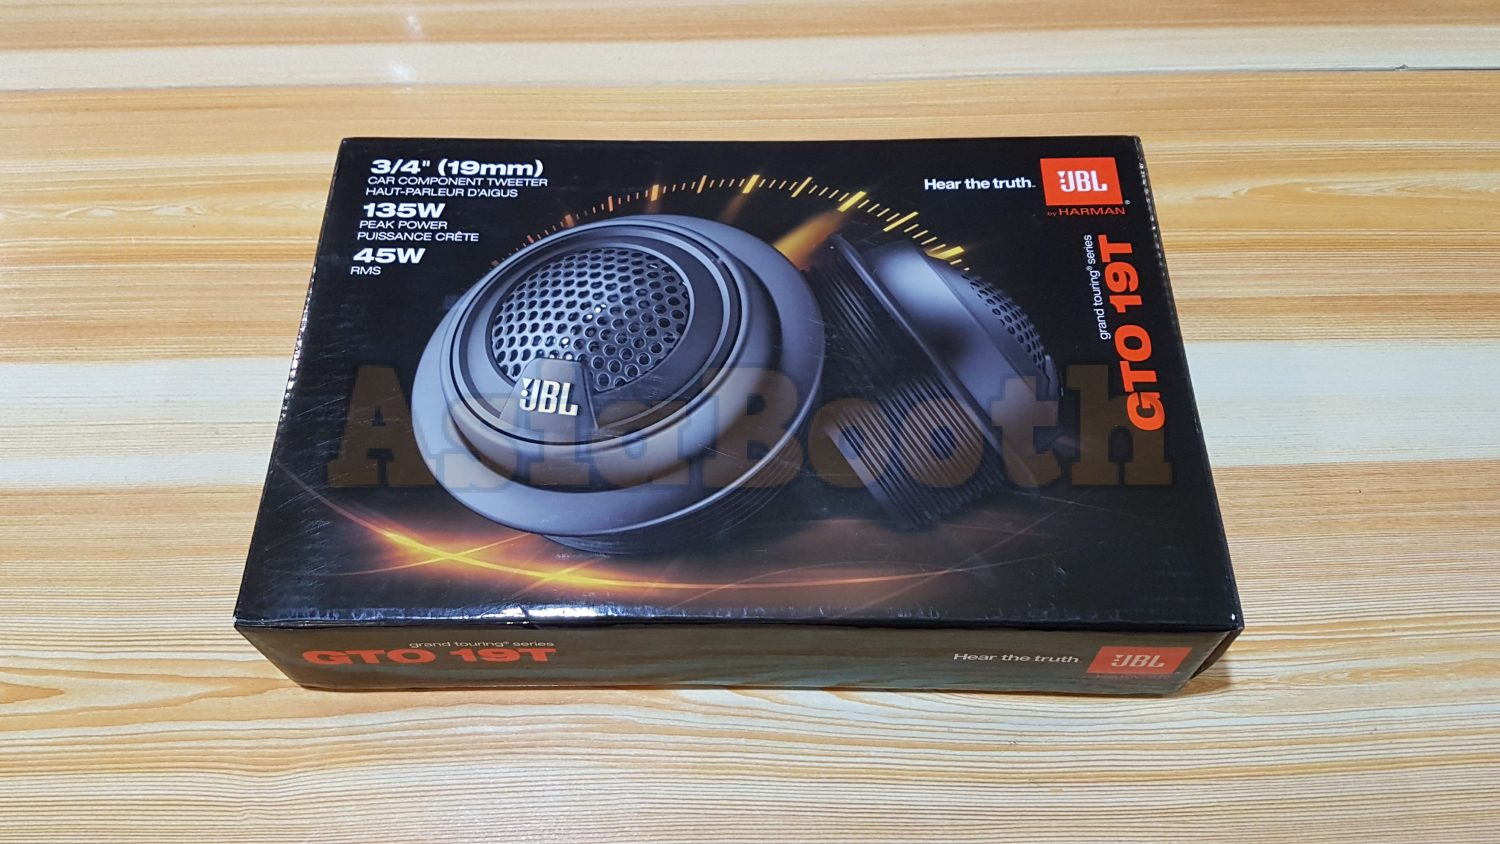 Jbl Gto 19t 3 4 Soft Dome Tweeters Car Speakers Audio Asia Booth